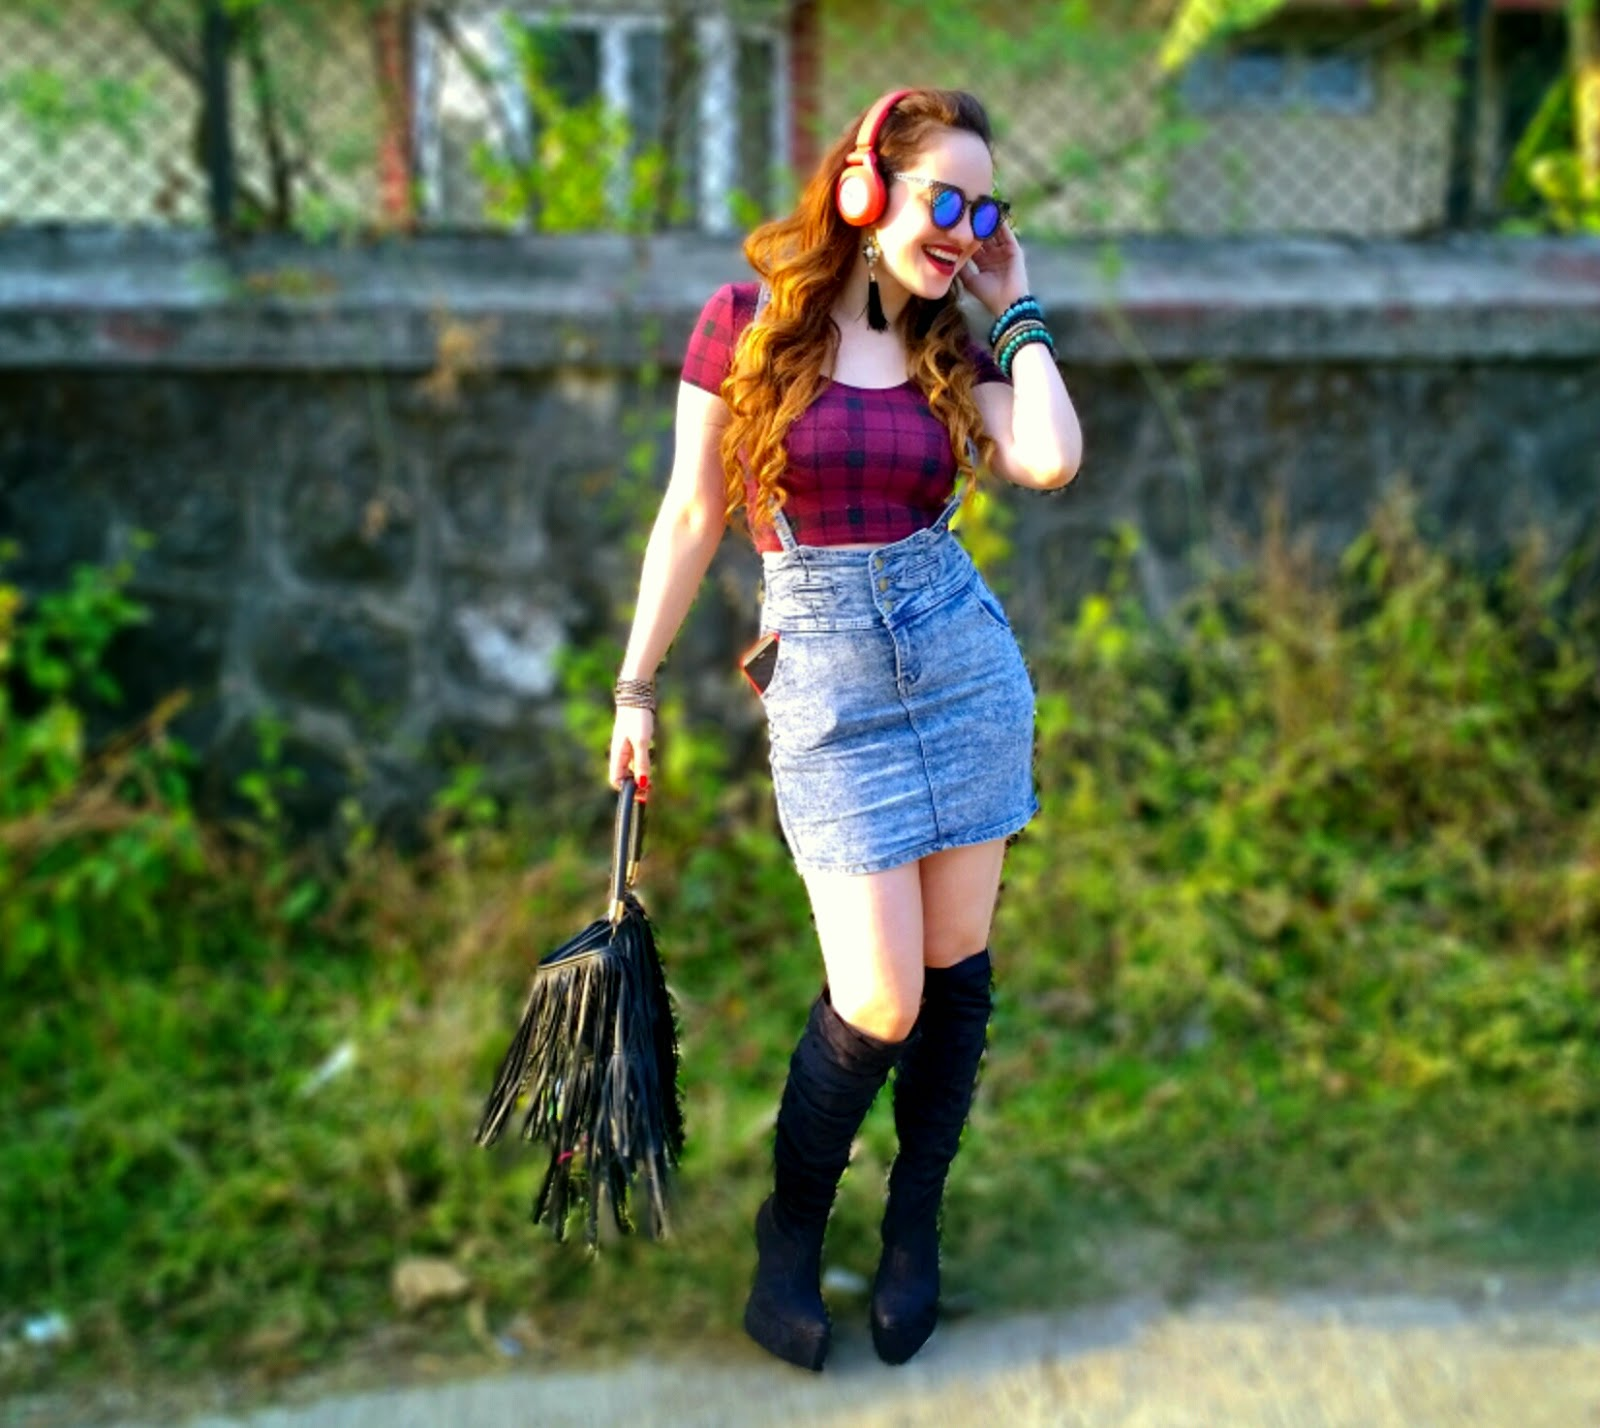 Tartan Plaid Crop Top,Denim Suspender Skirt,Ankle boots,JBL Wireless Headphones